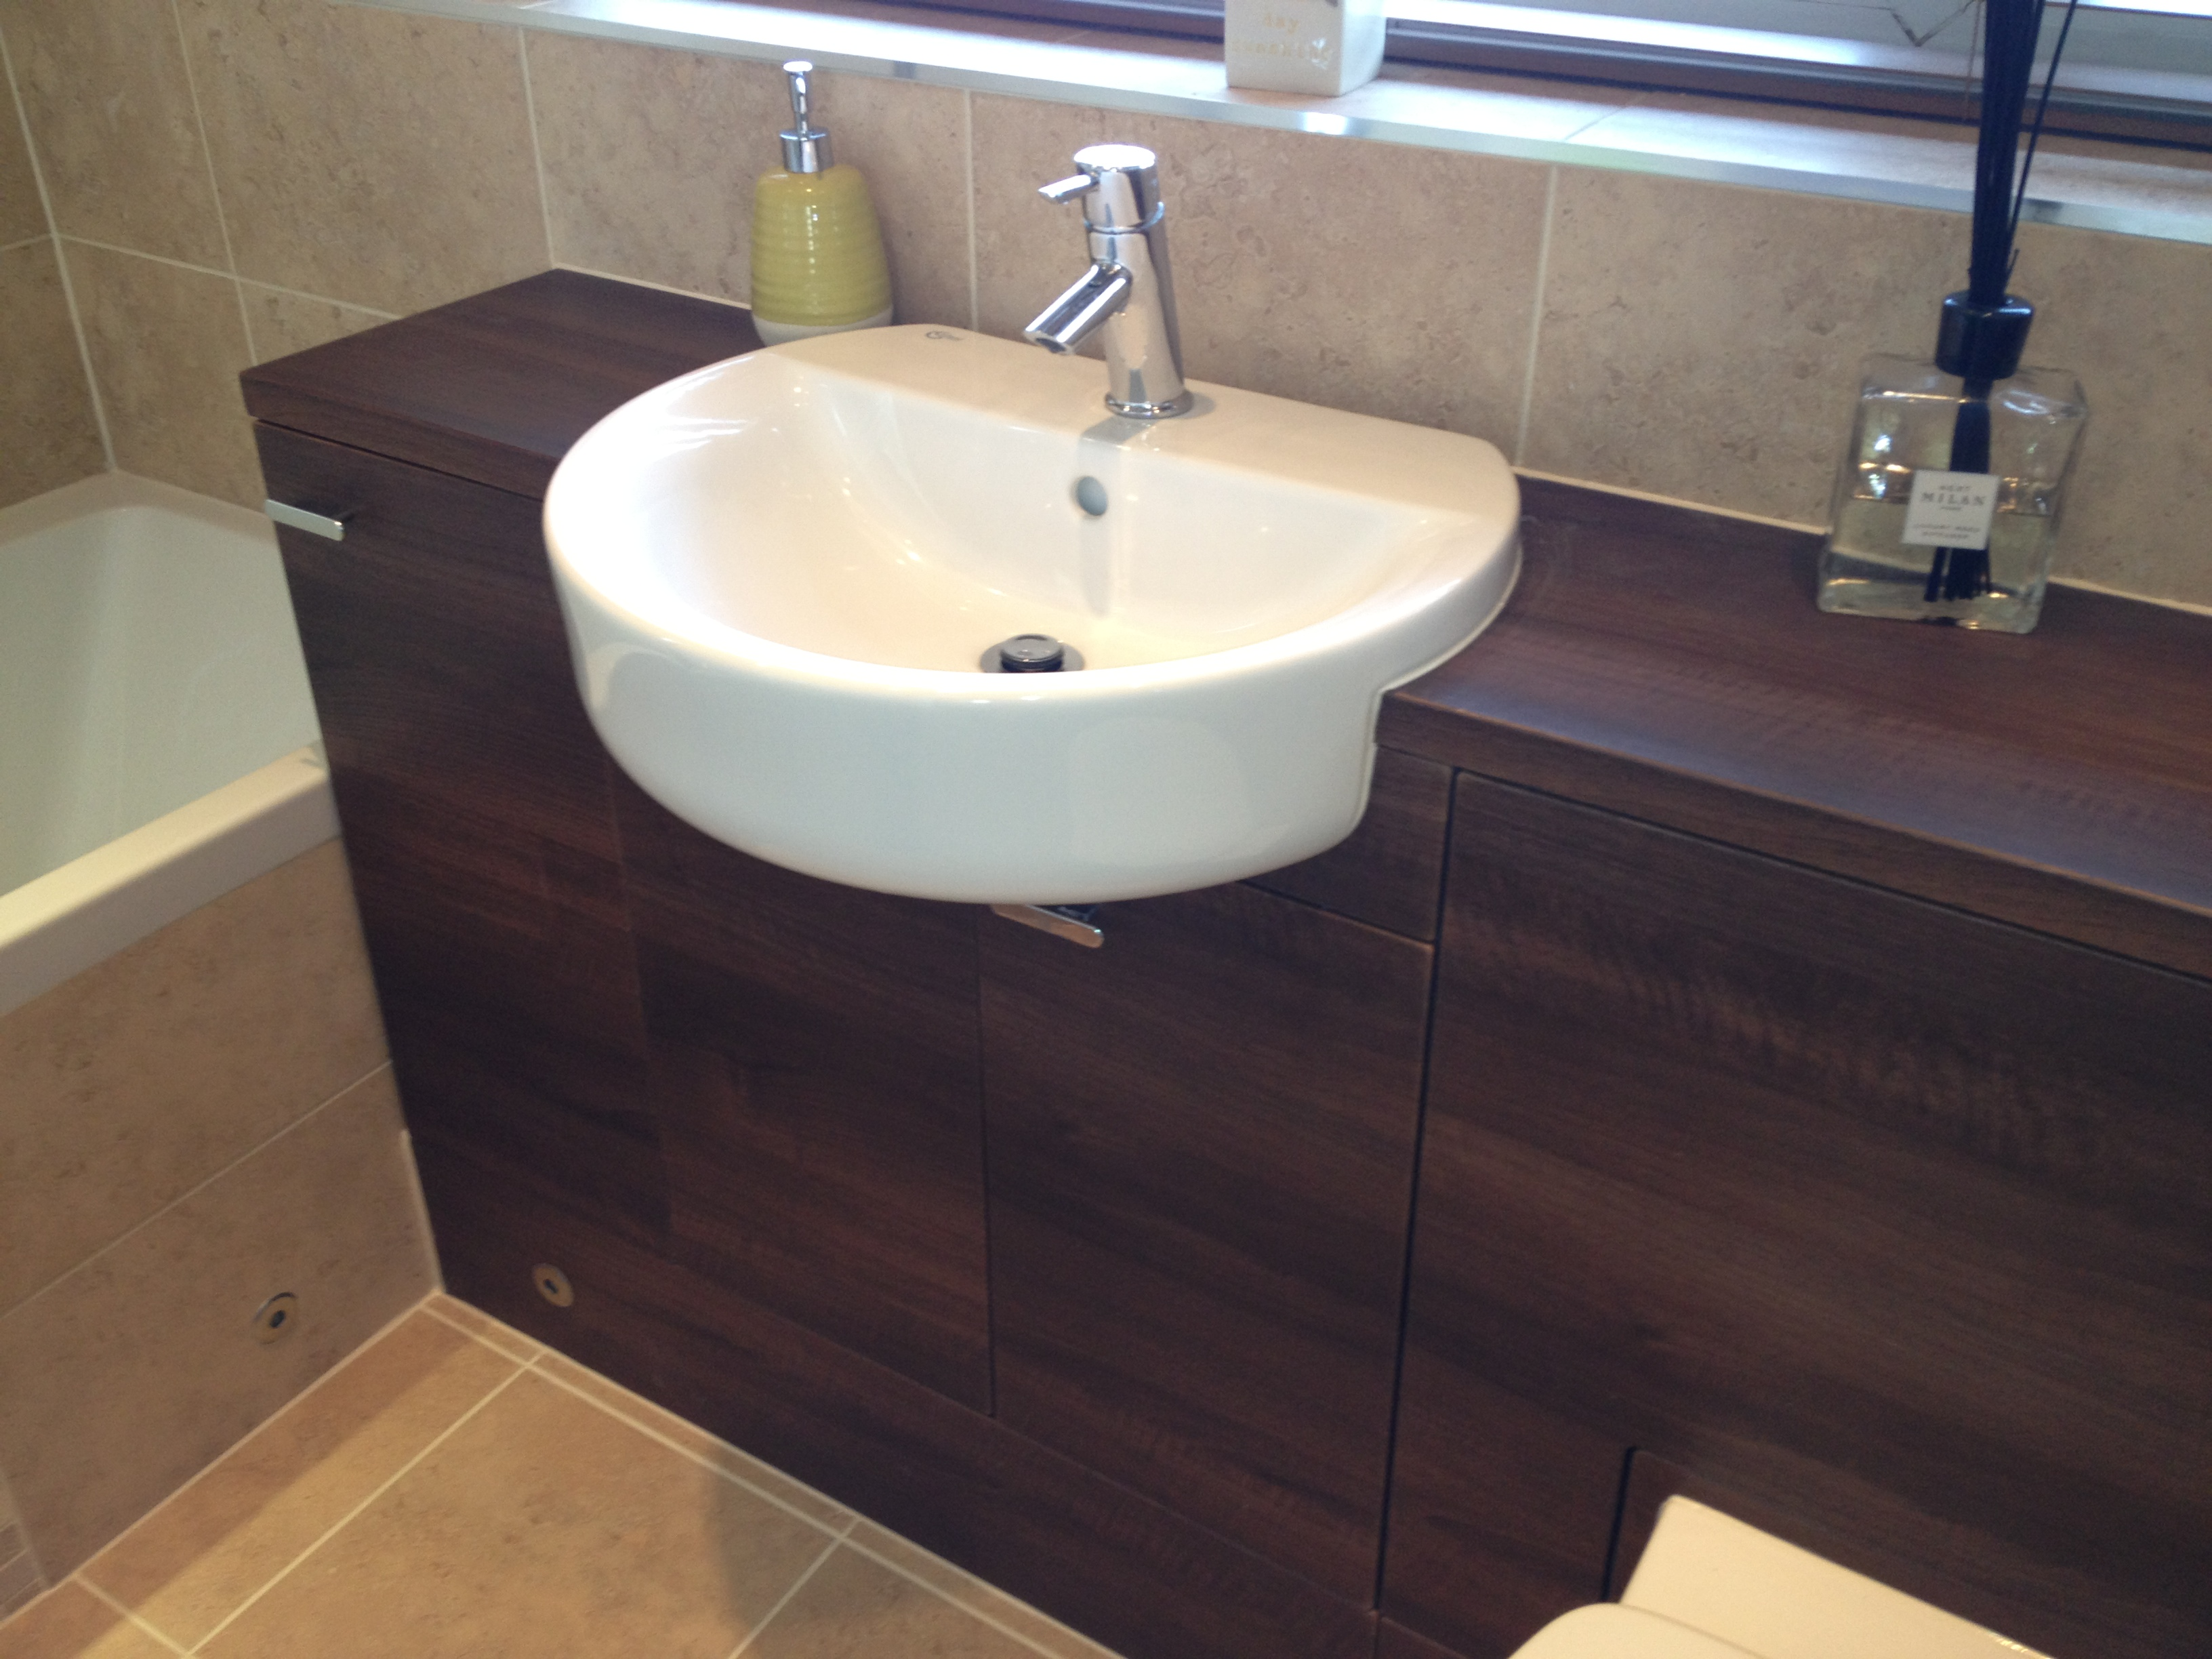 Built In Cabinets and Basin.